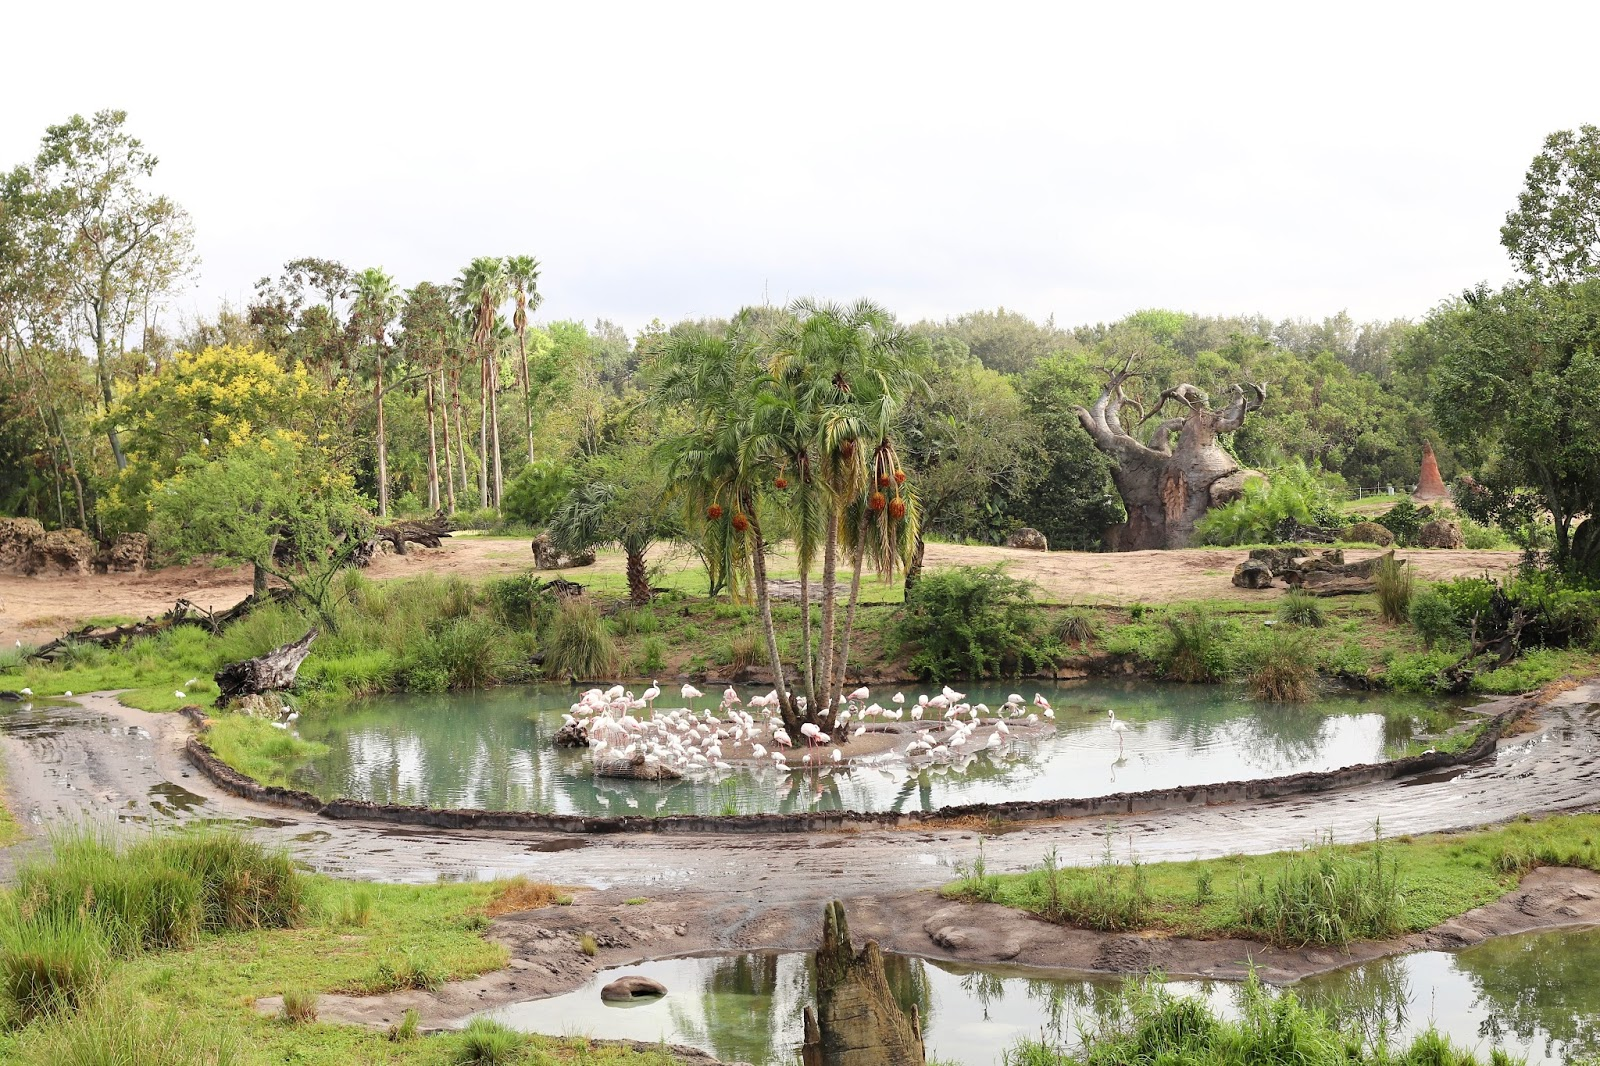 Animal Kingdom Wild Africa Trek Safari view